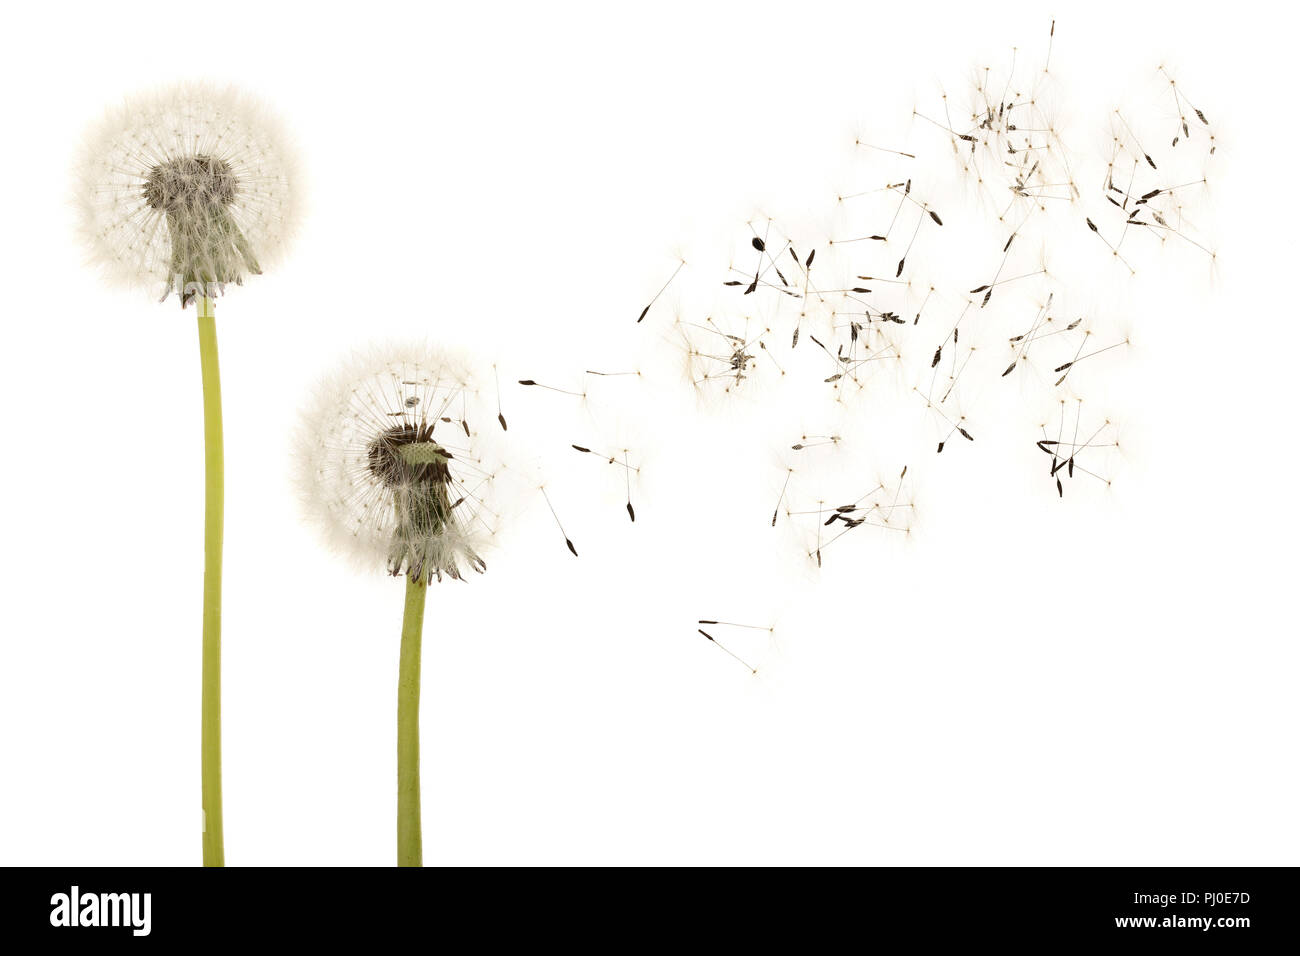 Fluffy White Flower Immagini   Fluffy White Flower Fotos Stock - Alamy 43b96ca439d8